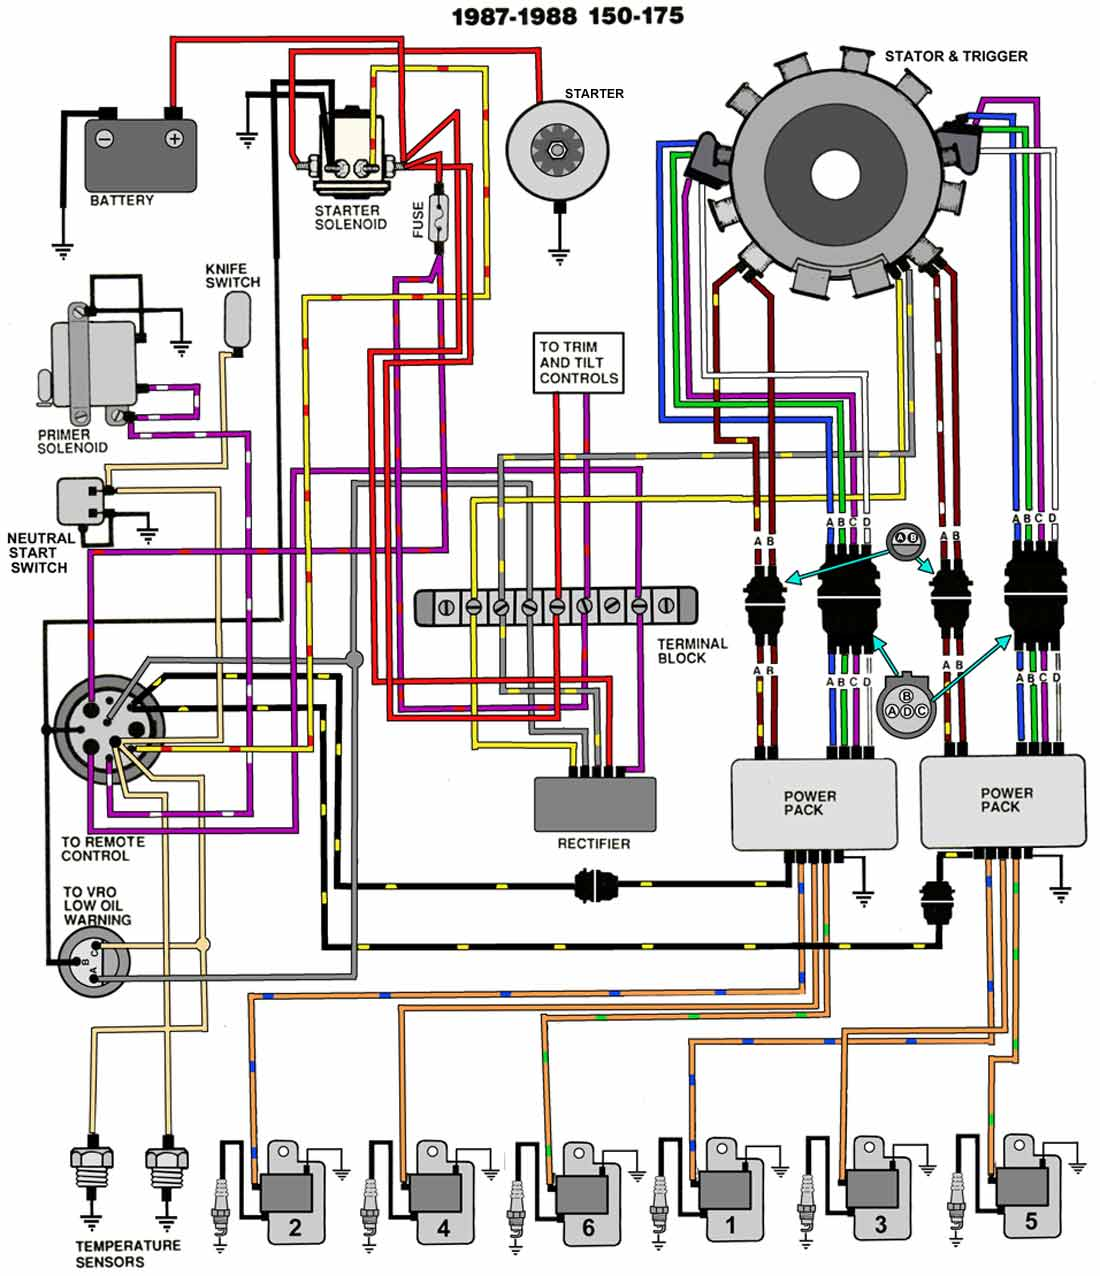 99 Mercury Outboard Motor Power Pak Wiring Diagram Data Harness String Techniques Evinrude Johnson Diagrams Mastertech Marine